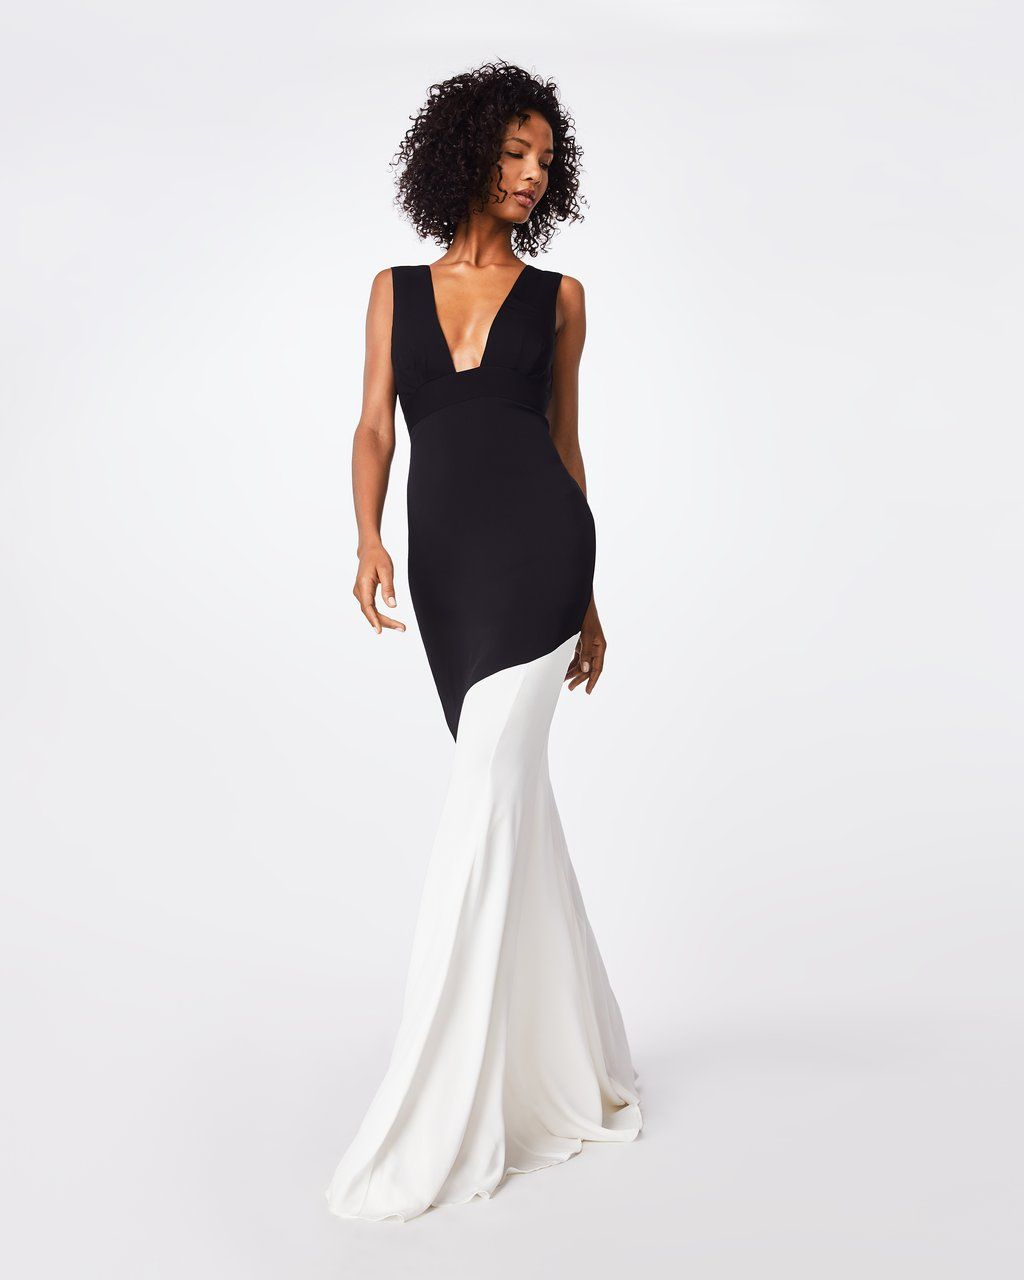 0a40a441559 BQ10347 - COLOR BLOCK PLUNGE GOWN - dresses - long - A tasteful body-slimming  dress